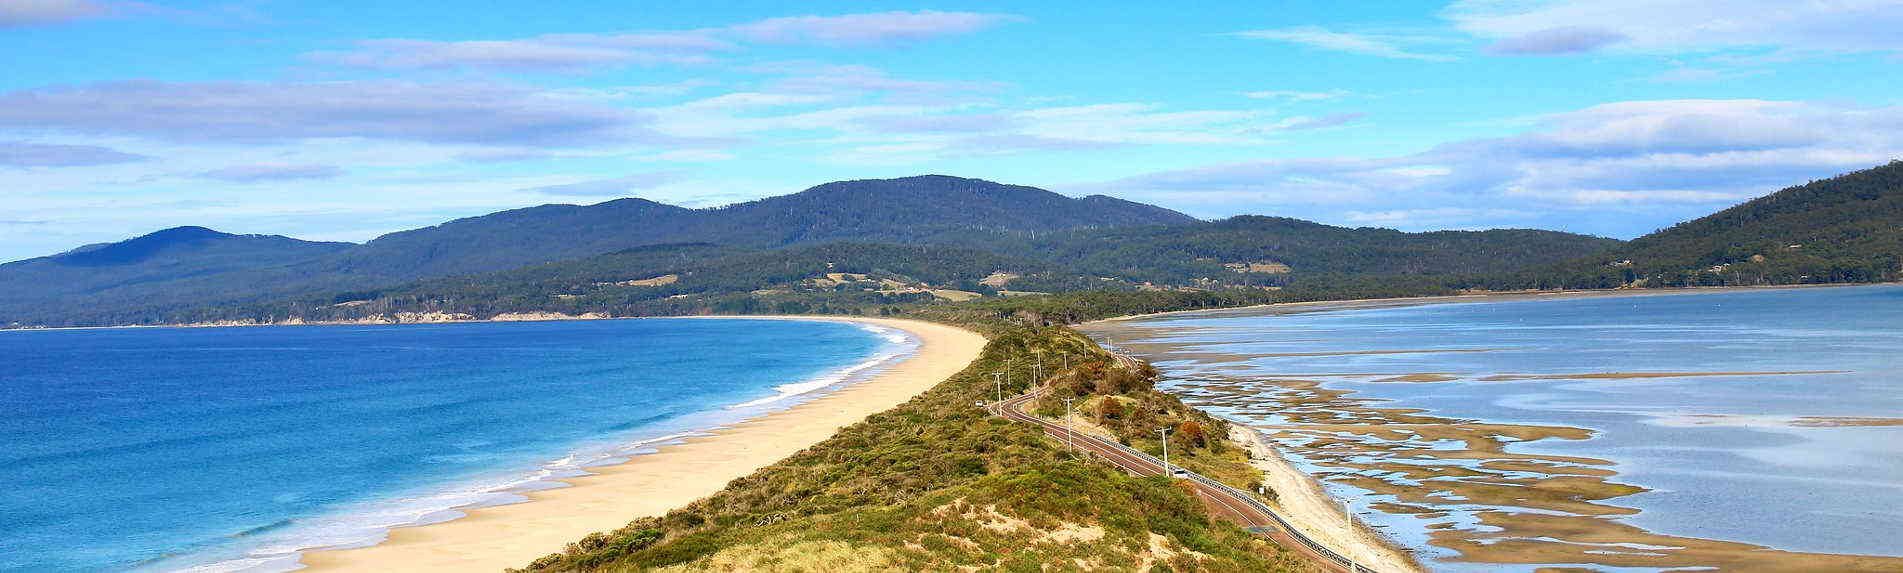 What is Tasmania Best Known For?